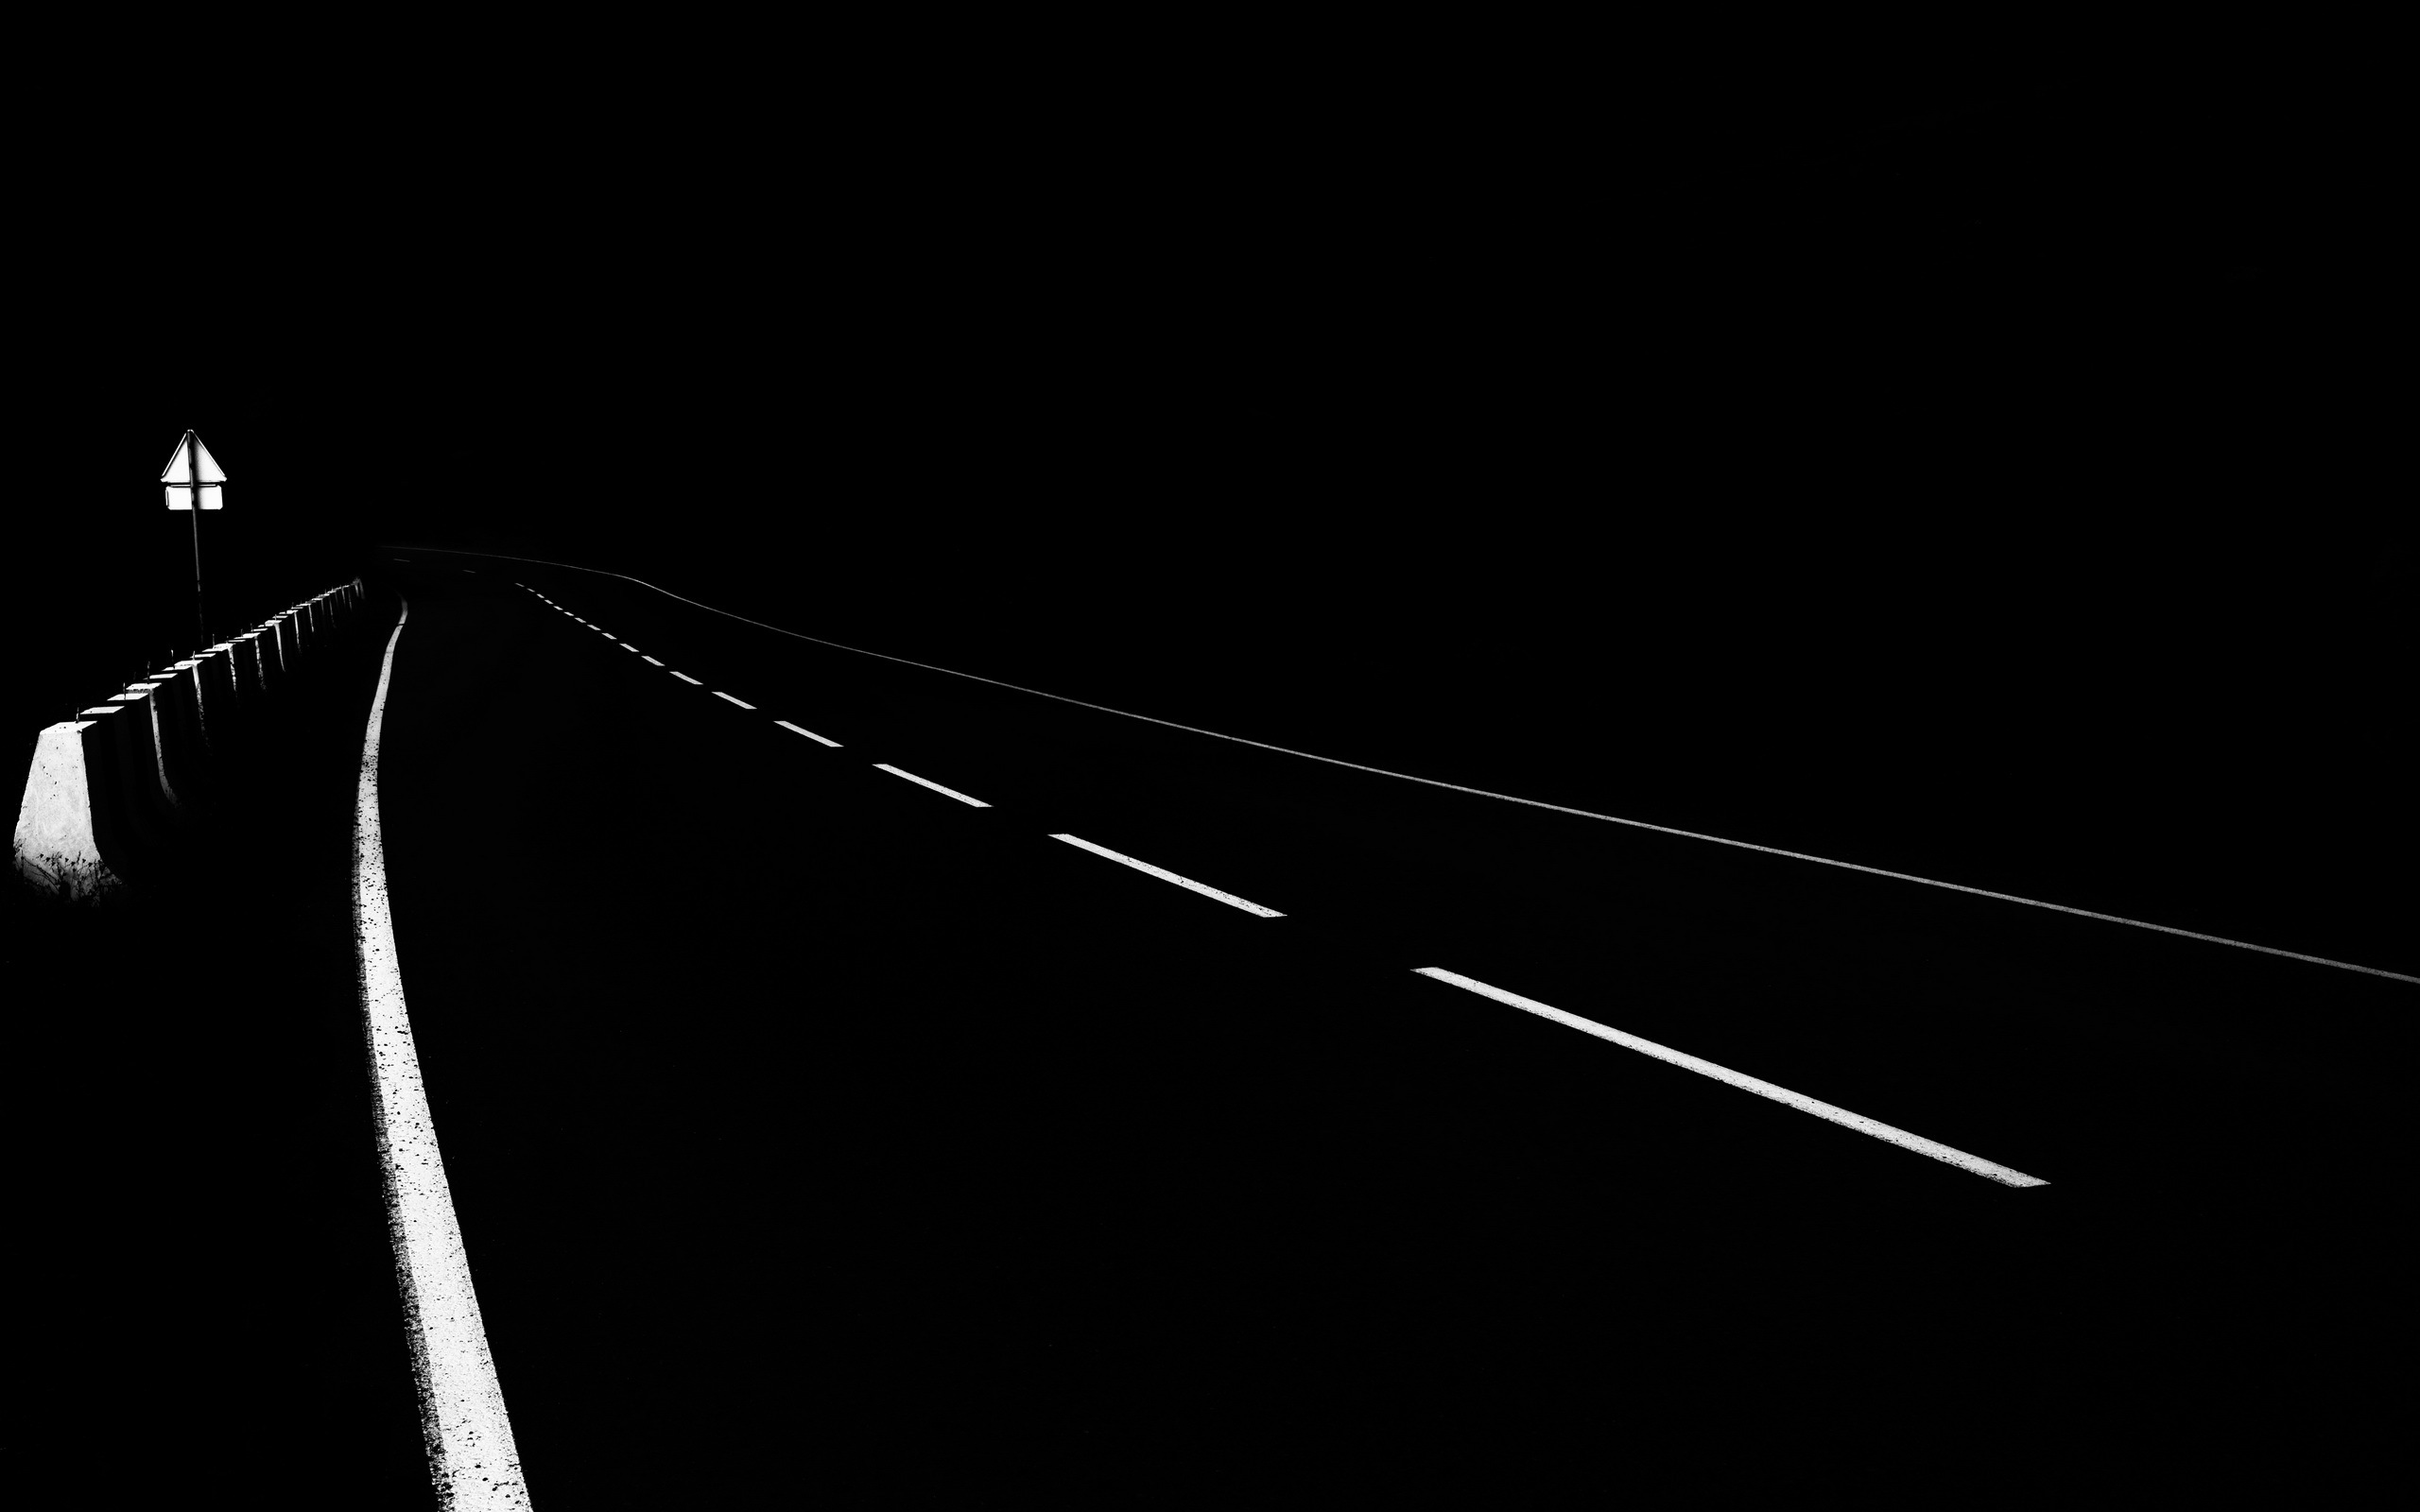 Dark Road Wallpapers ID508282